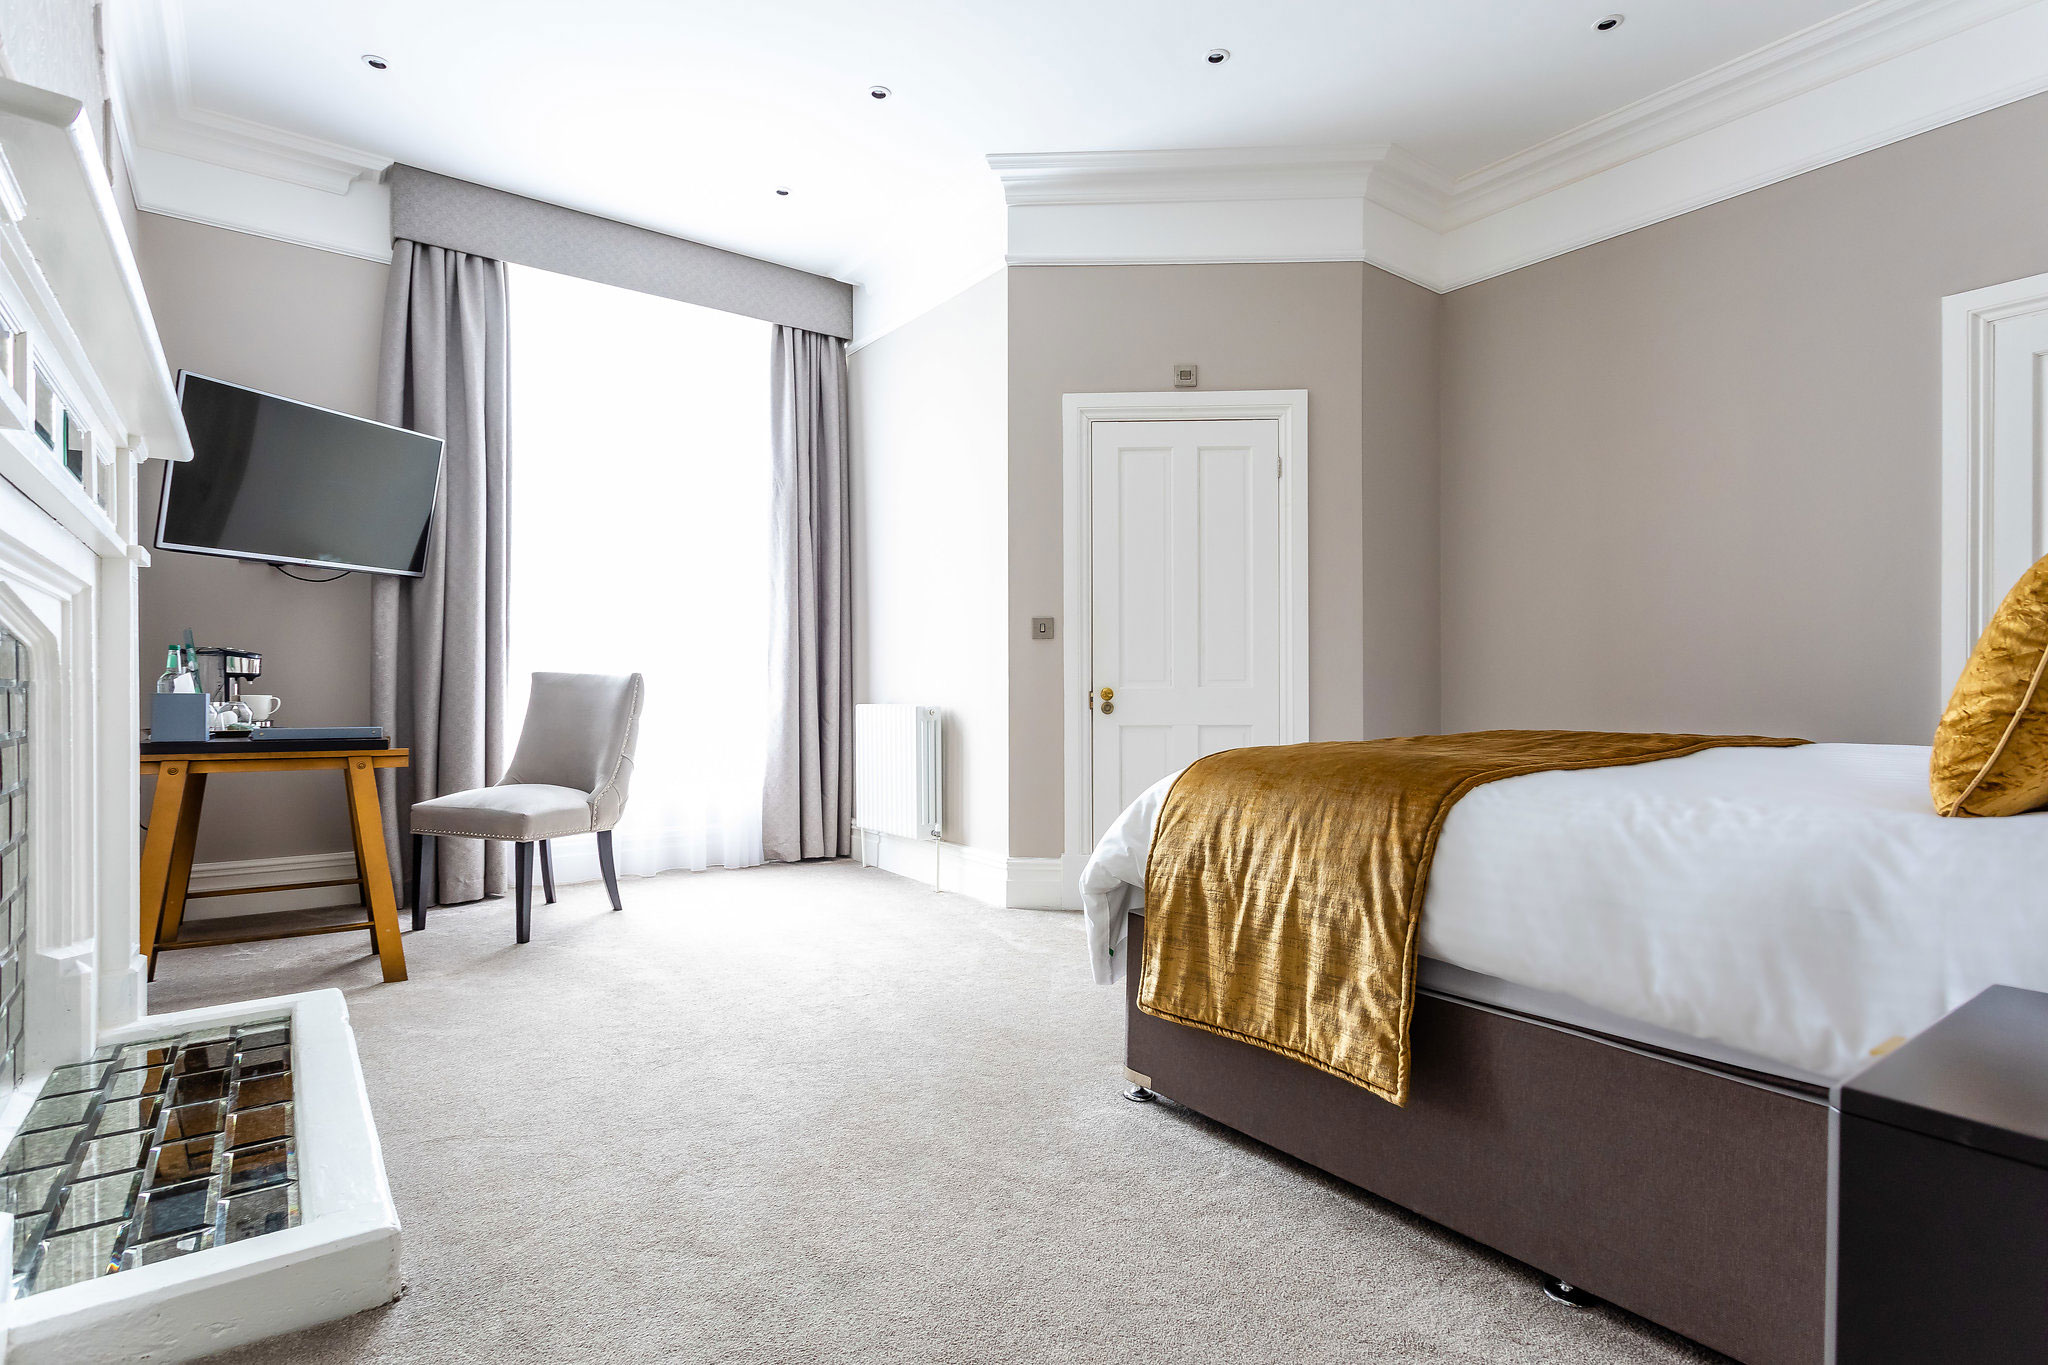 classic hotel room with golden bedspread